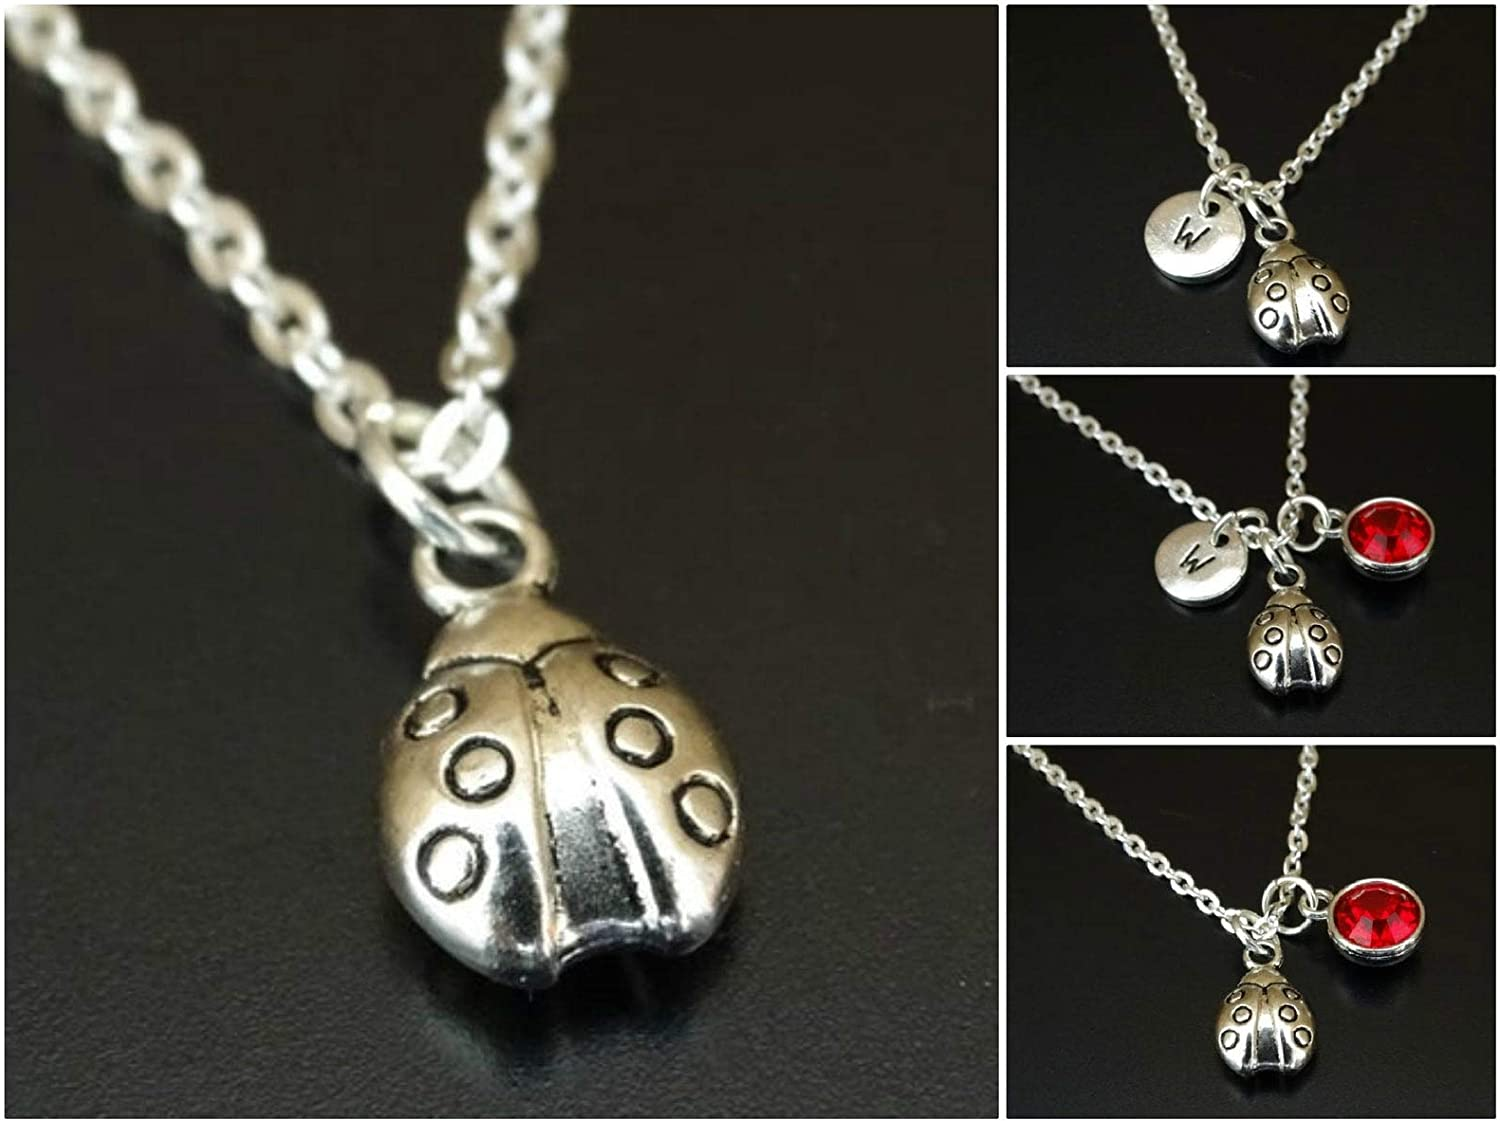 Ladybug Necklace Initial Letter Birthstone Silver Charm Pendant Customized Jewelry Gift